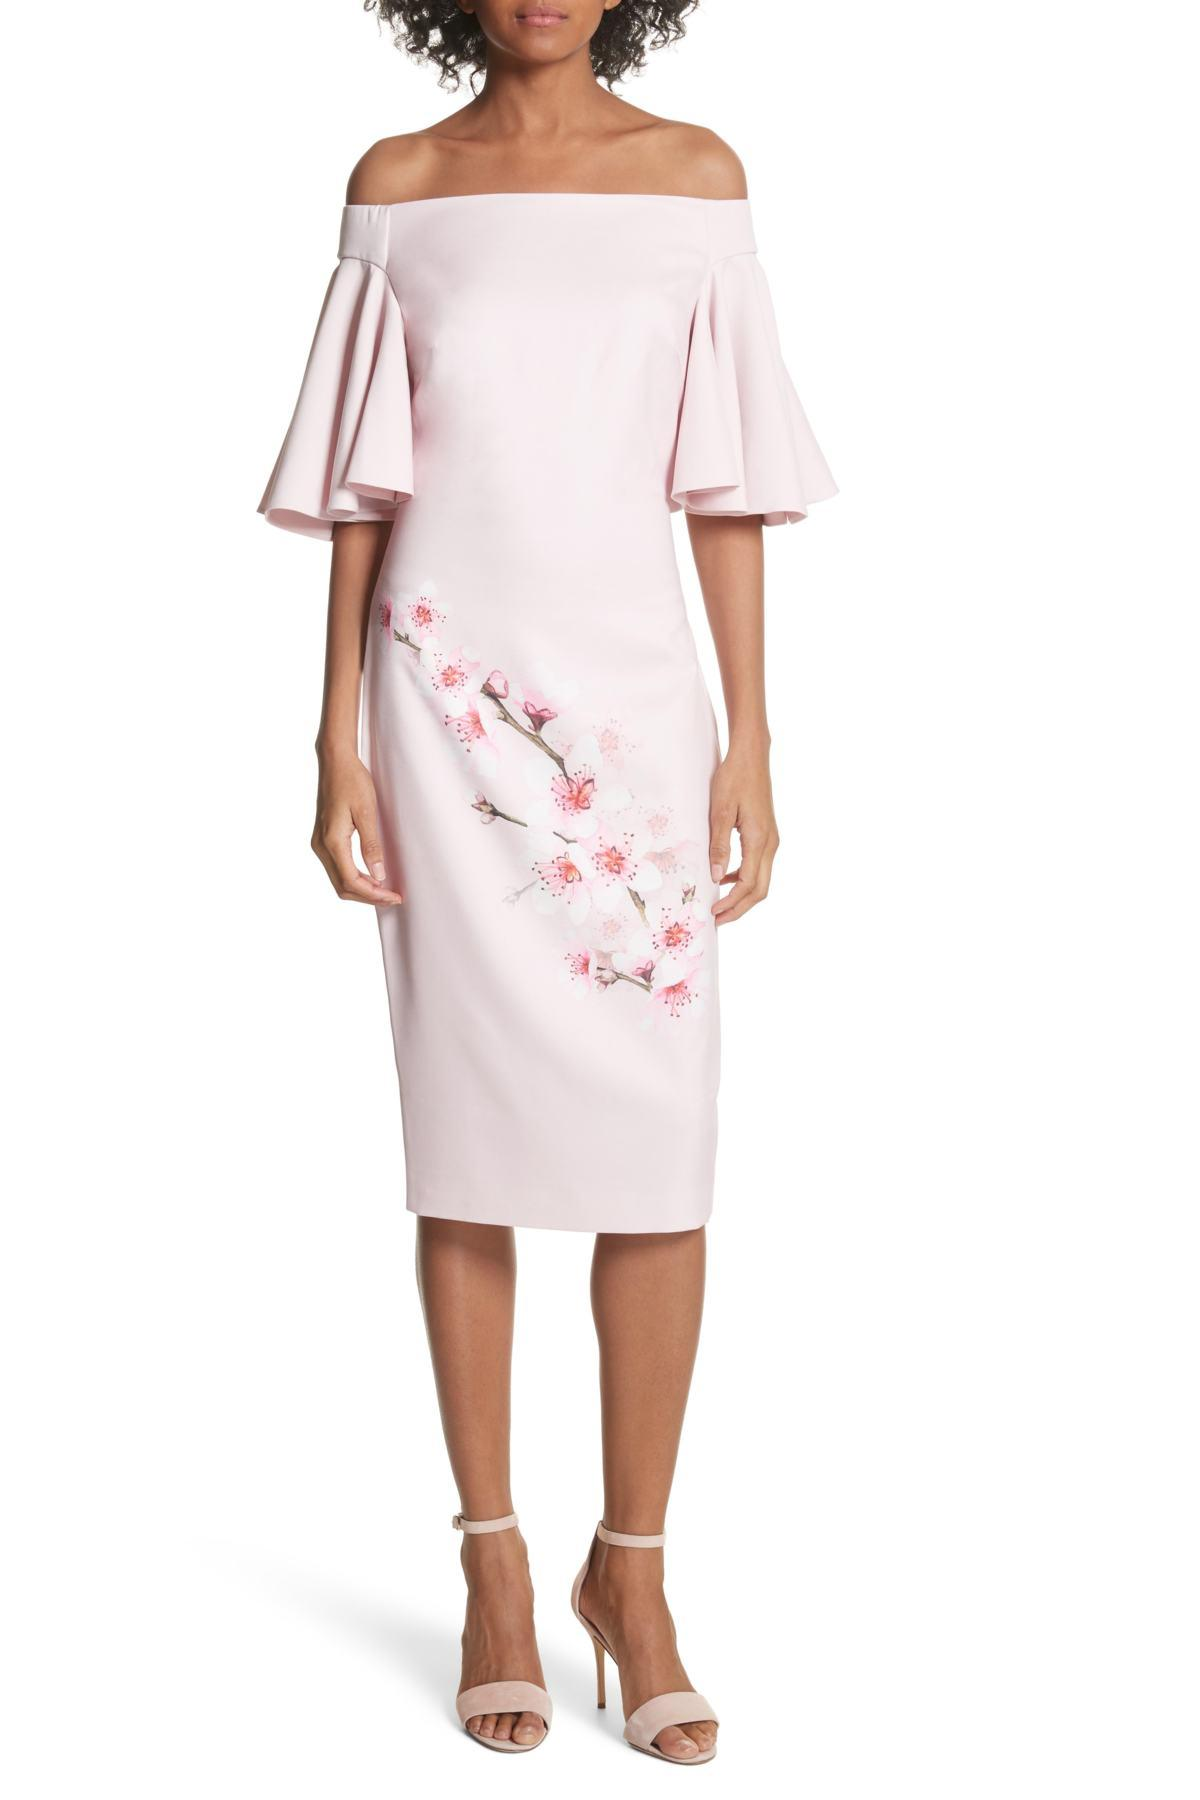 2280cc7baed00d Lyst - Ted Baker Soft Blossom Off-the-shoulder Sheath Dress in Pink